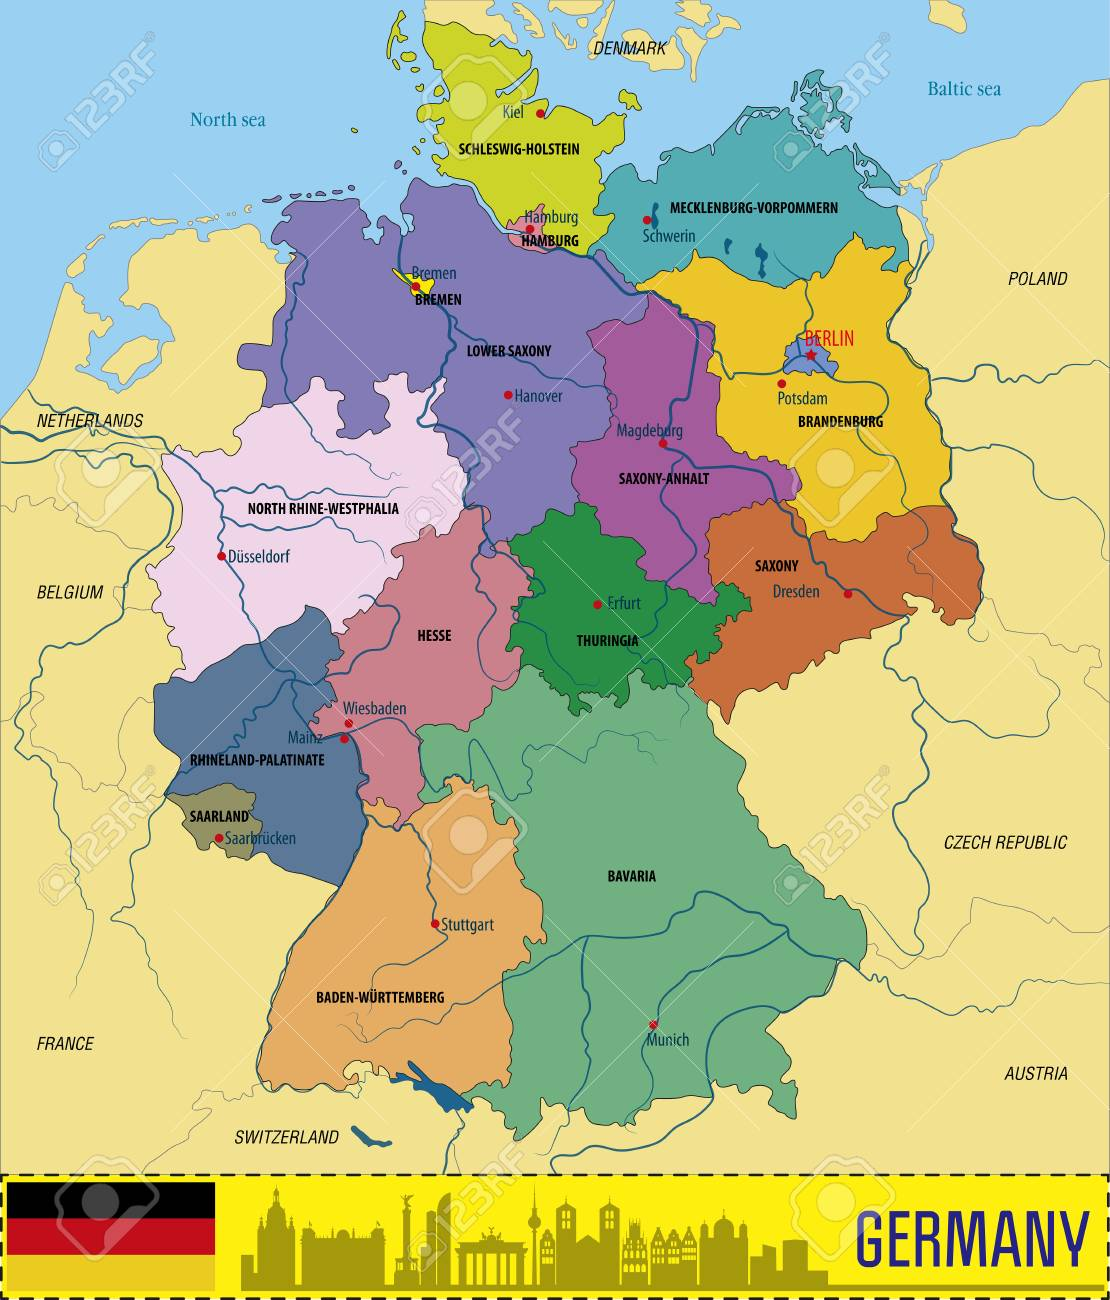 Map Of Germany Regions.Political Vector Map Of Germany With Regions And Their Capitals